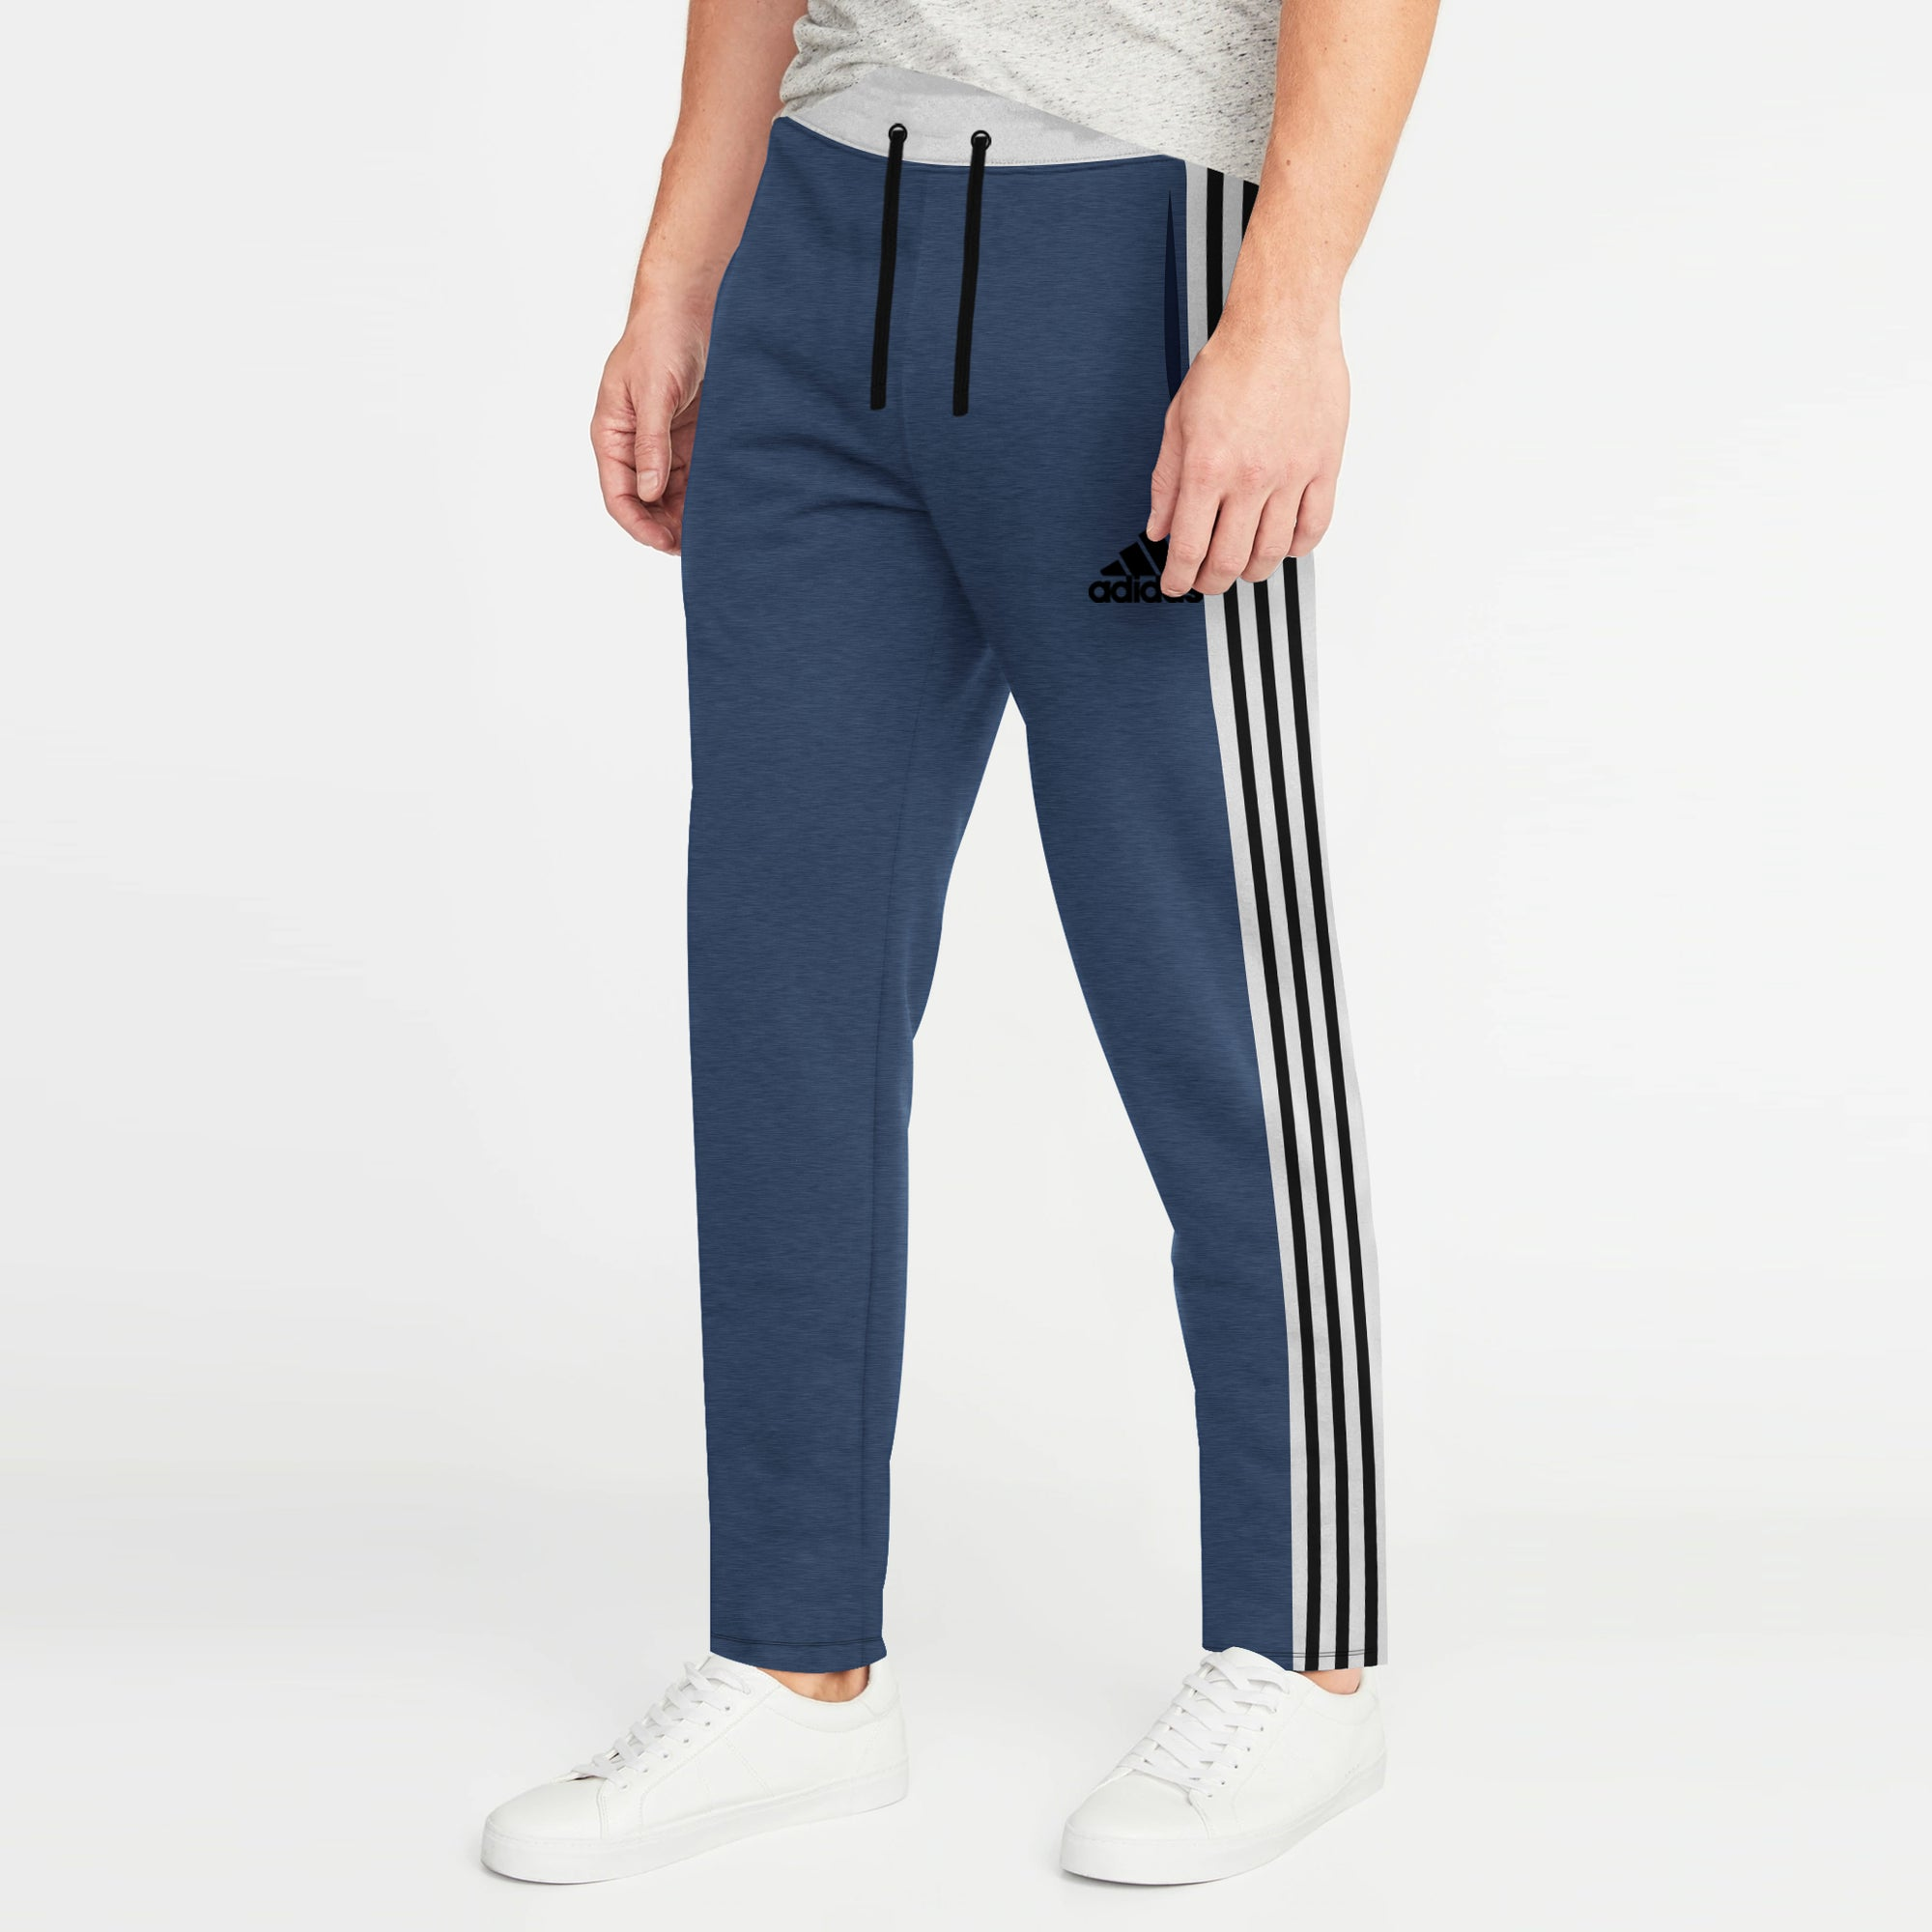 Adidas Single Jersey Regular Fit Jogger Trouser For Men-Navy Melange With Grey & Black Stripe-BE8792